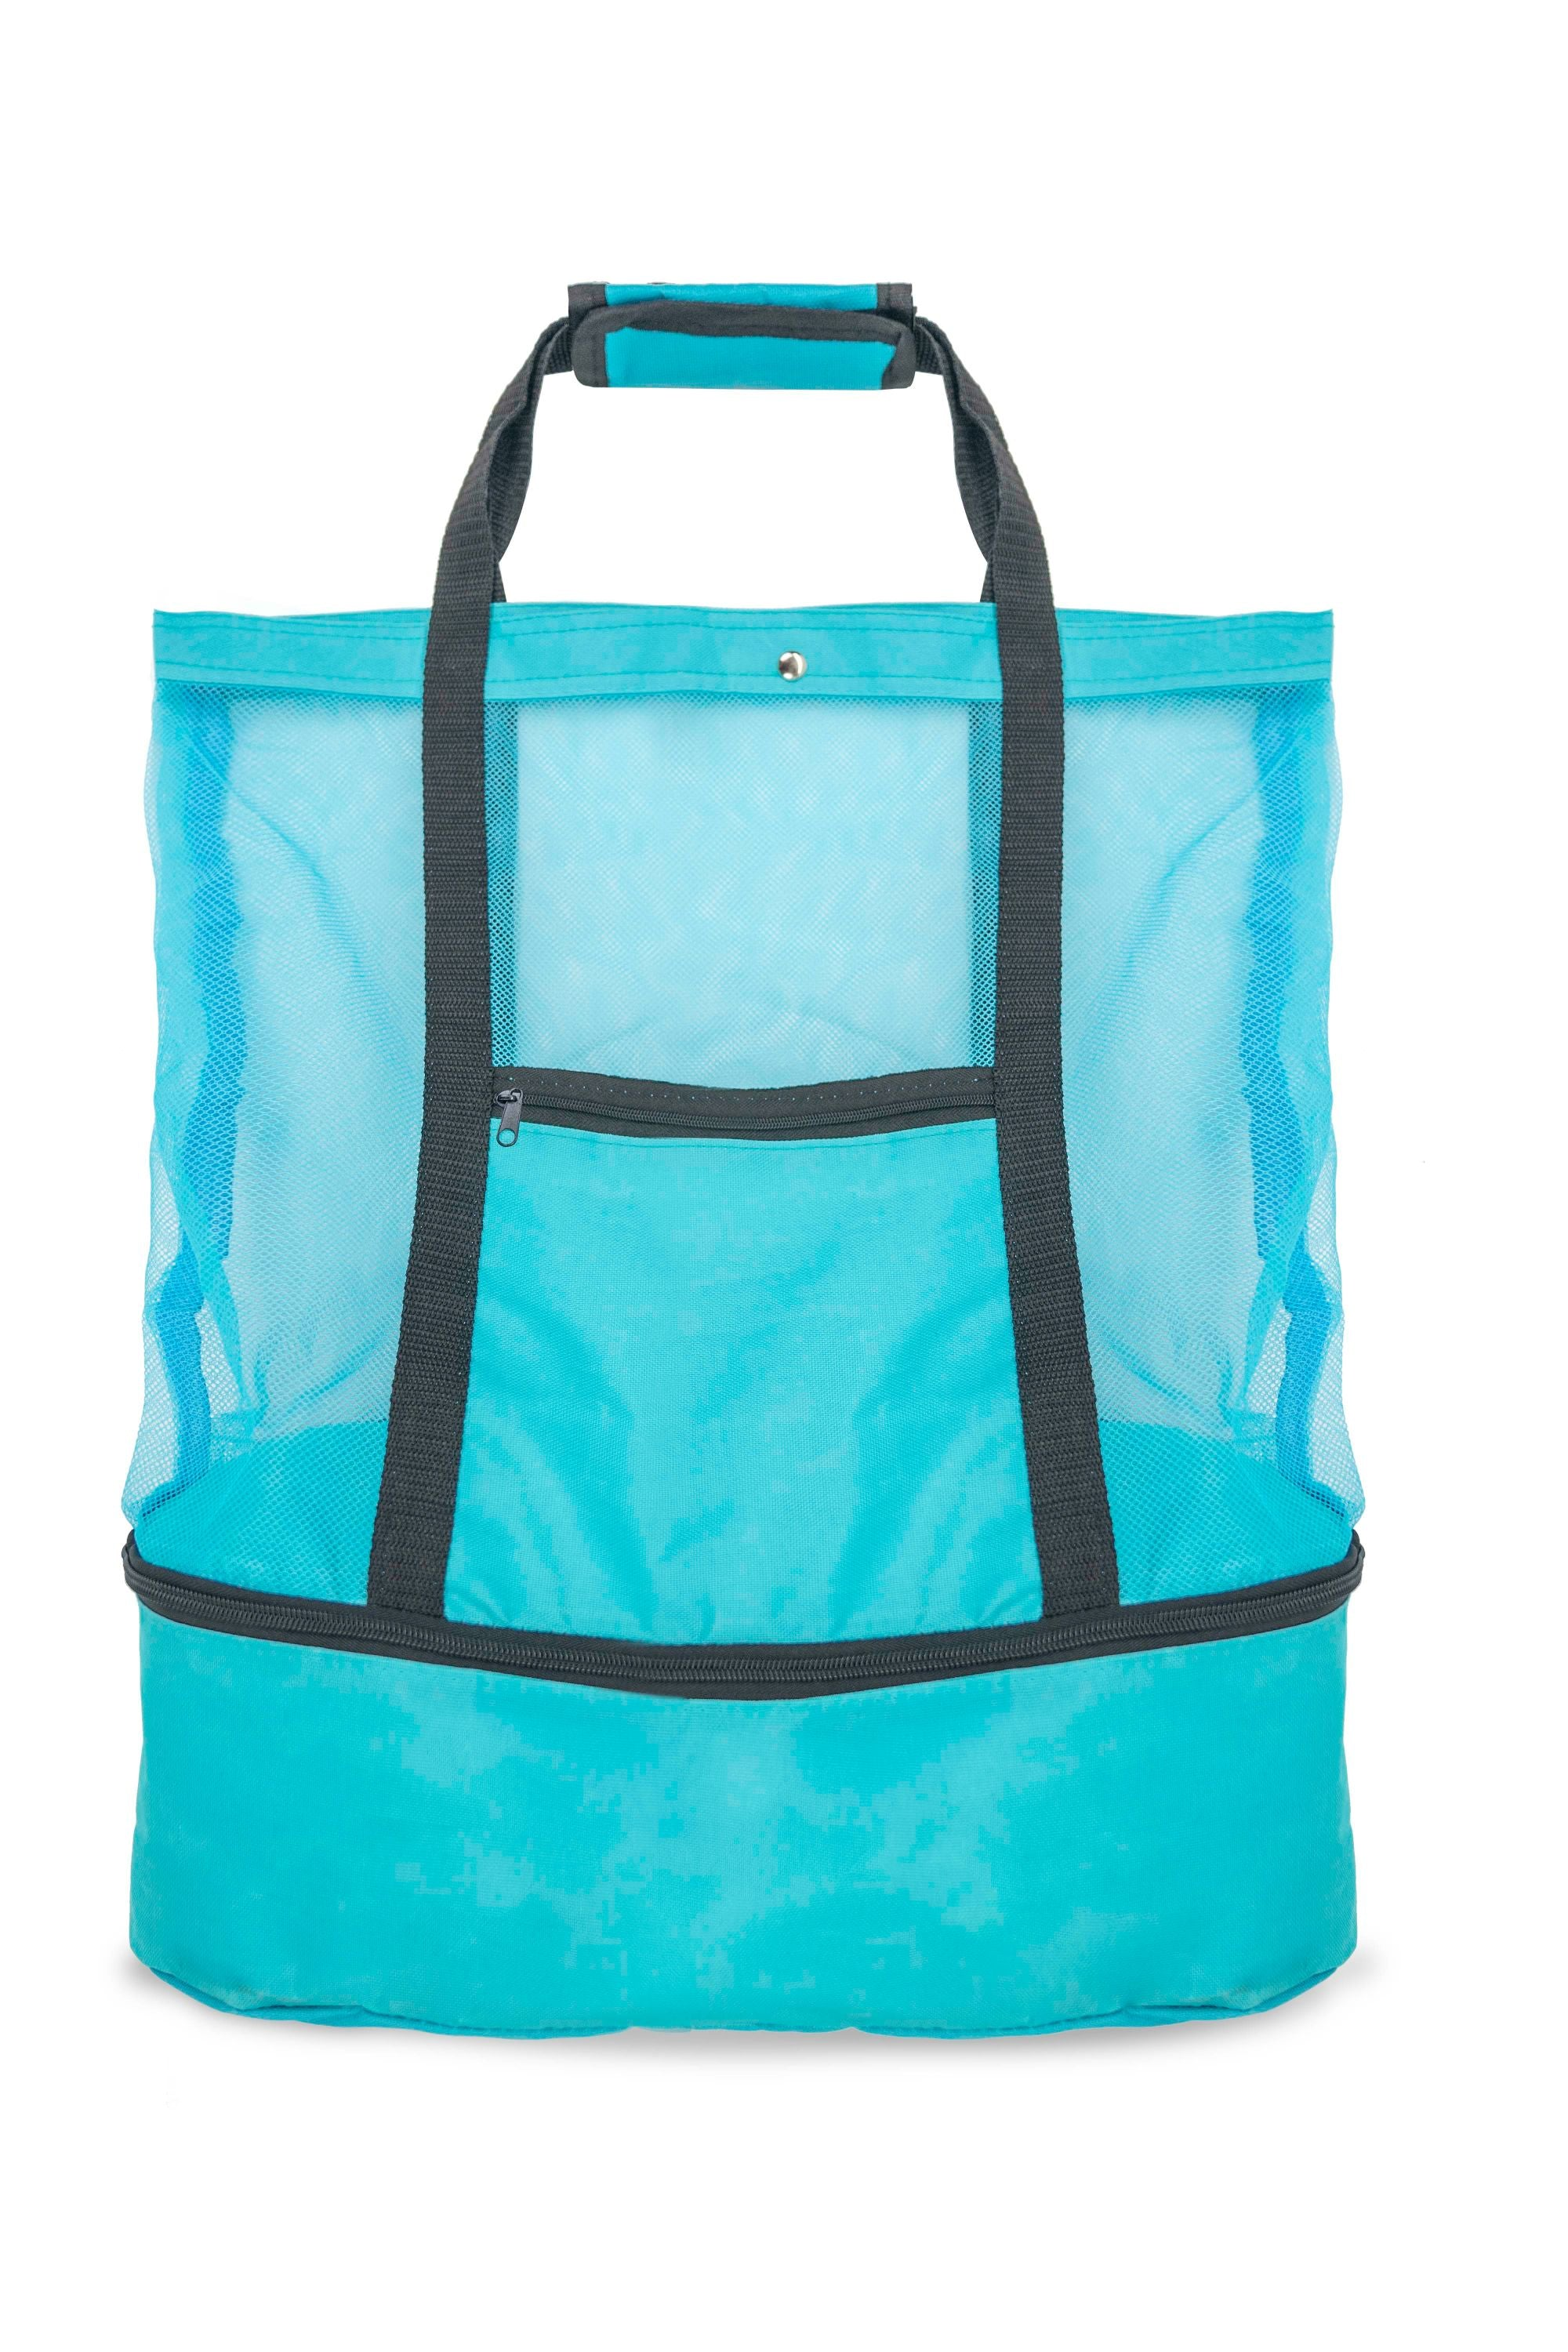 shopify-Insulated Cooler Picnic Beach Tote Bag-5